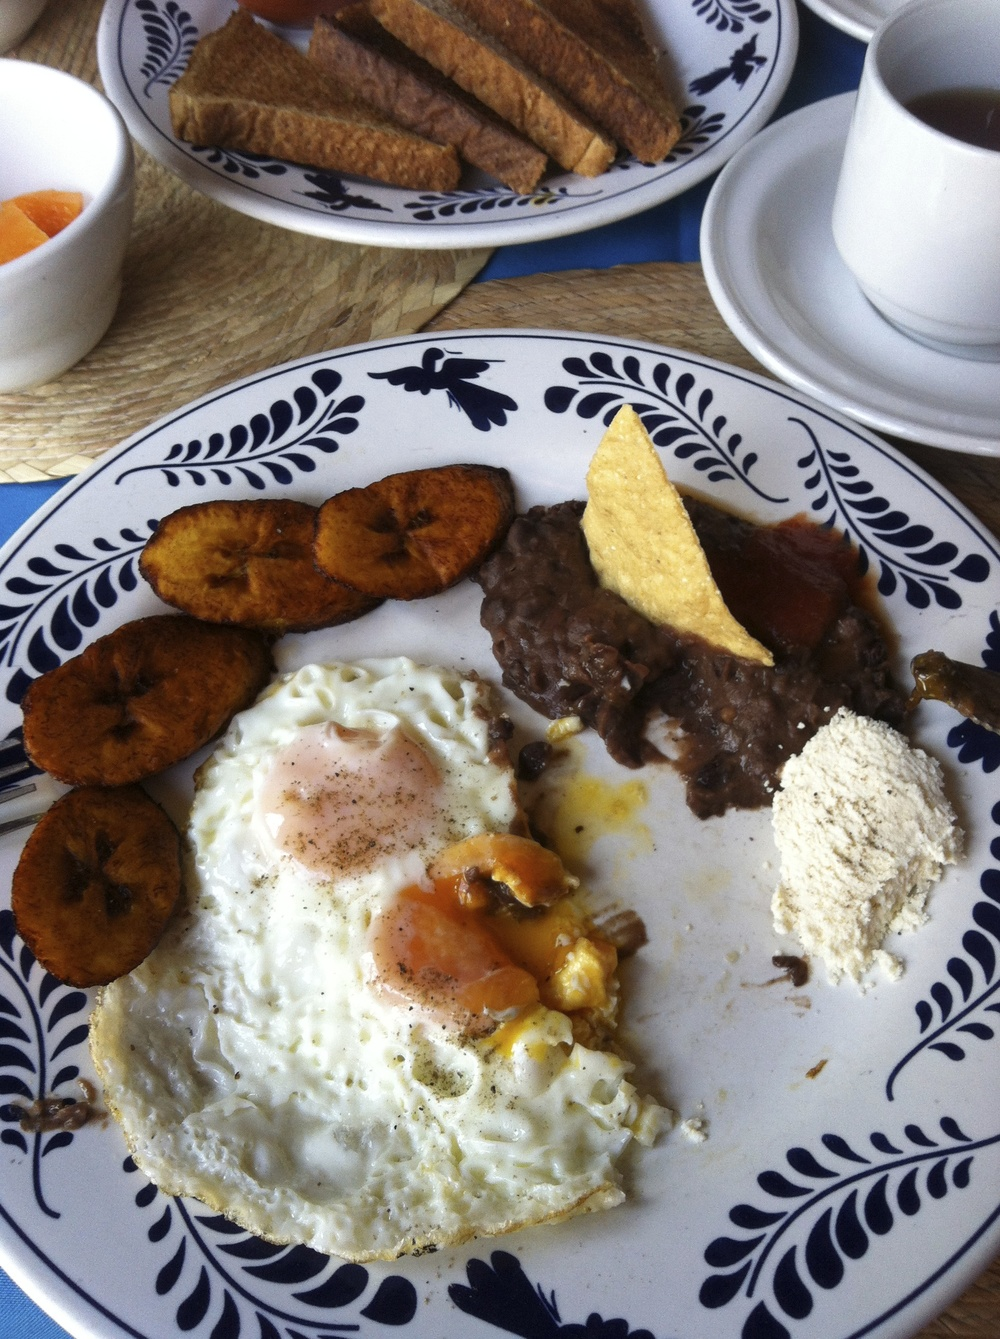 Fried eggs, plantains, black beans and cheese for brekky…Next time I'll take a pic before I take a bite!